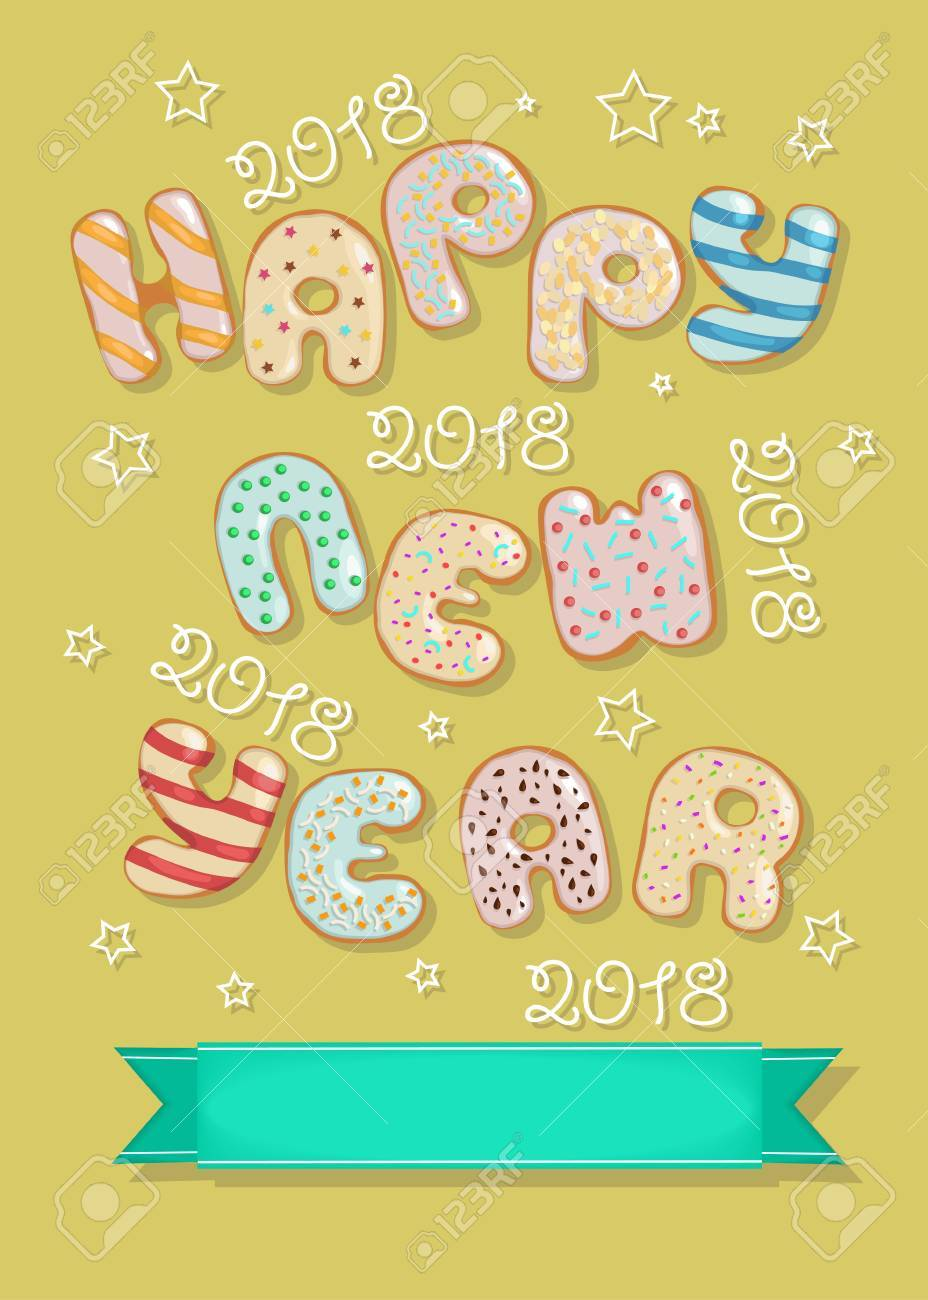 happy new year 2018 sweet donuts and green banner for custom text artistic